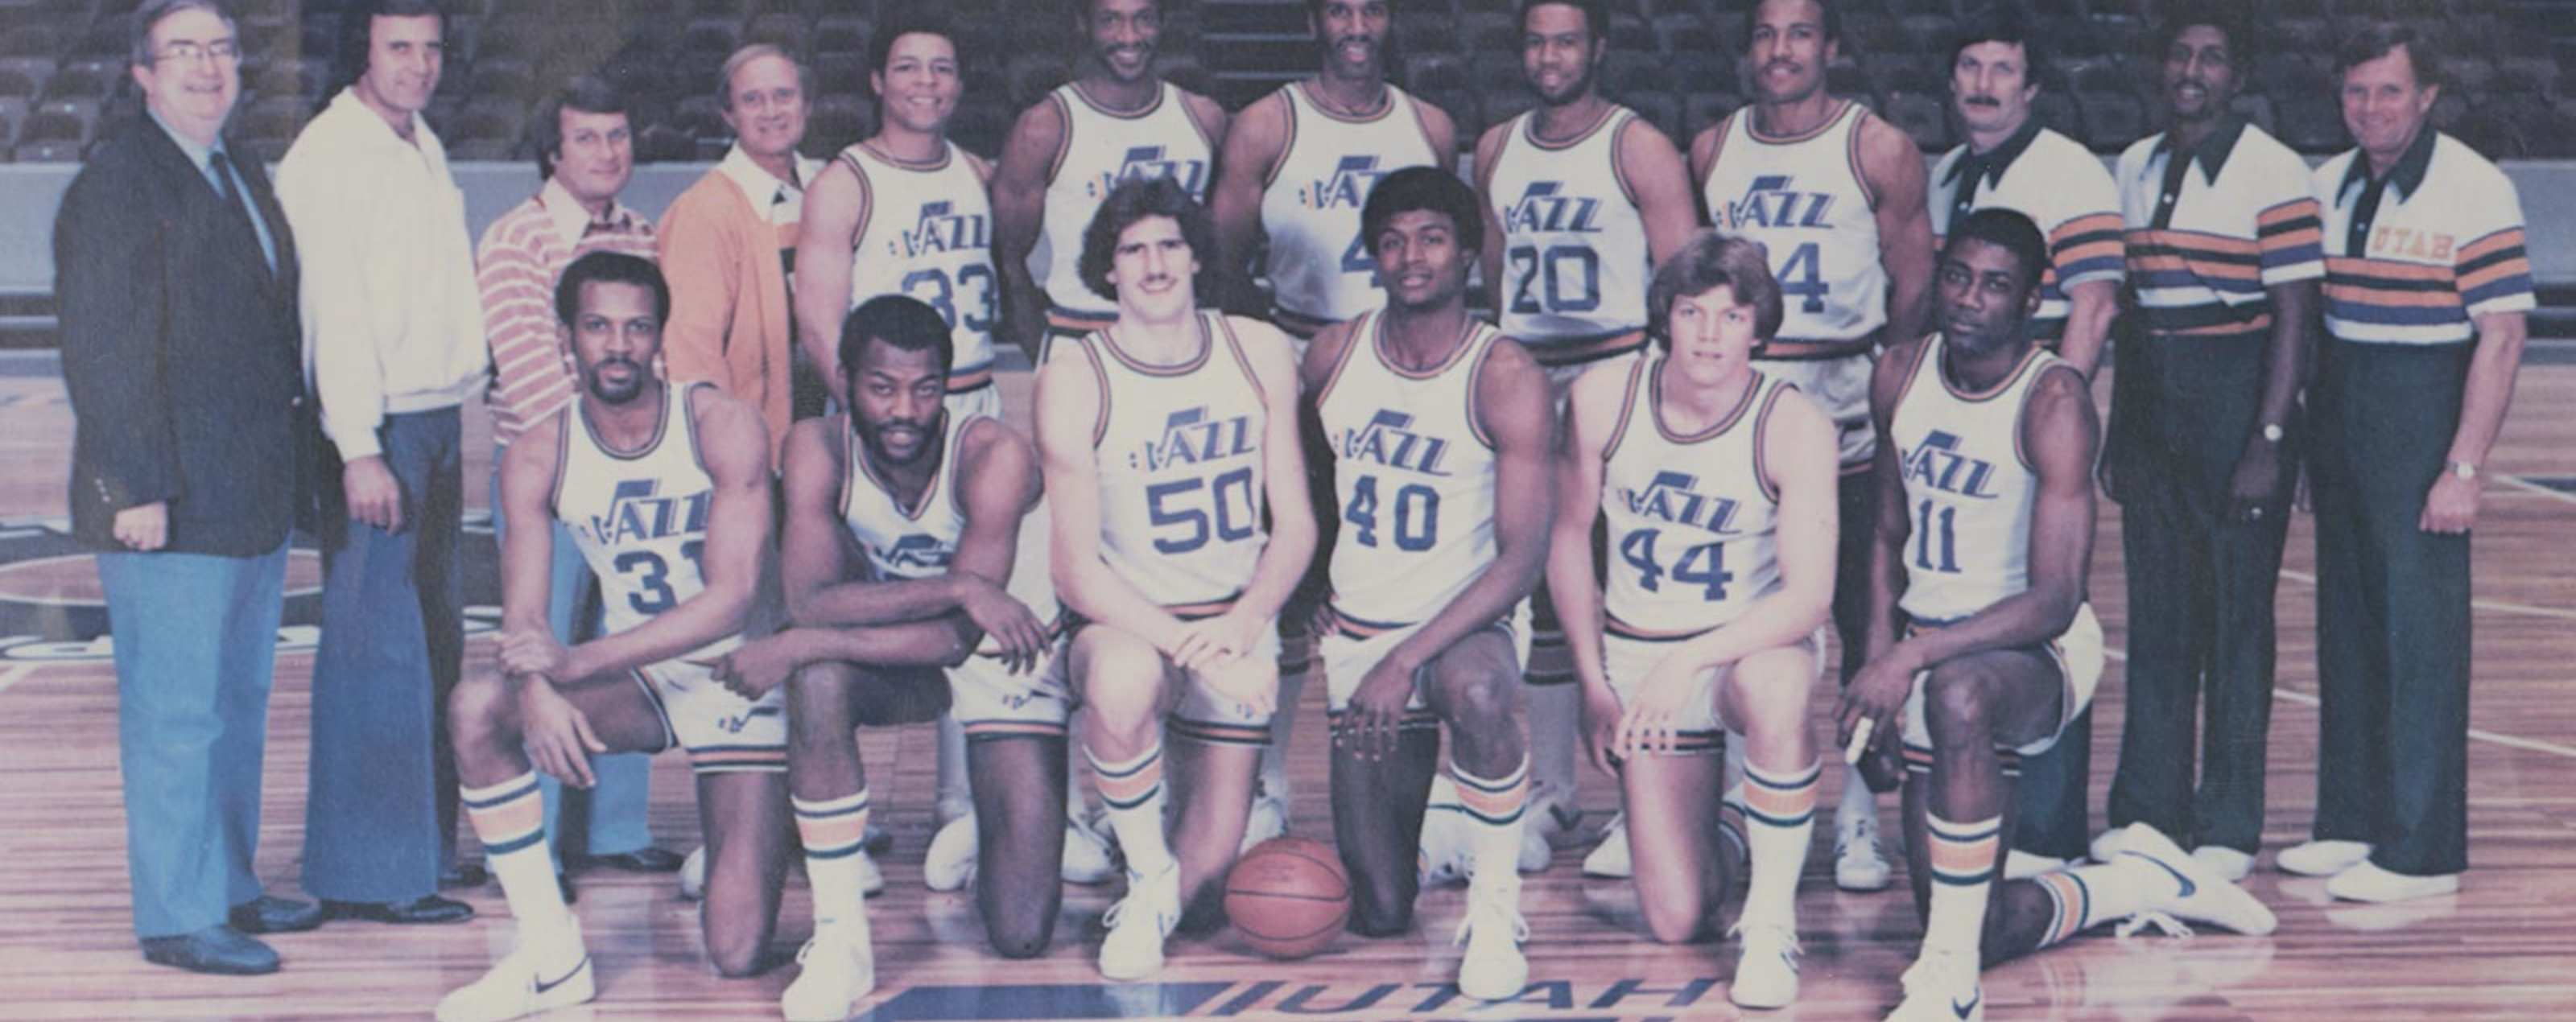 b6730e5da5c  I didn t think we would make it   An oral history of the first season of the  Utah Jazz